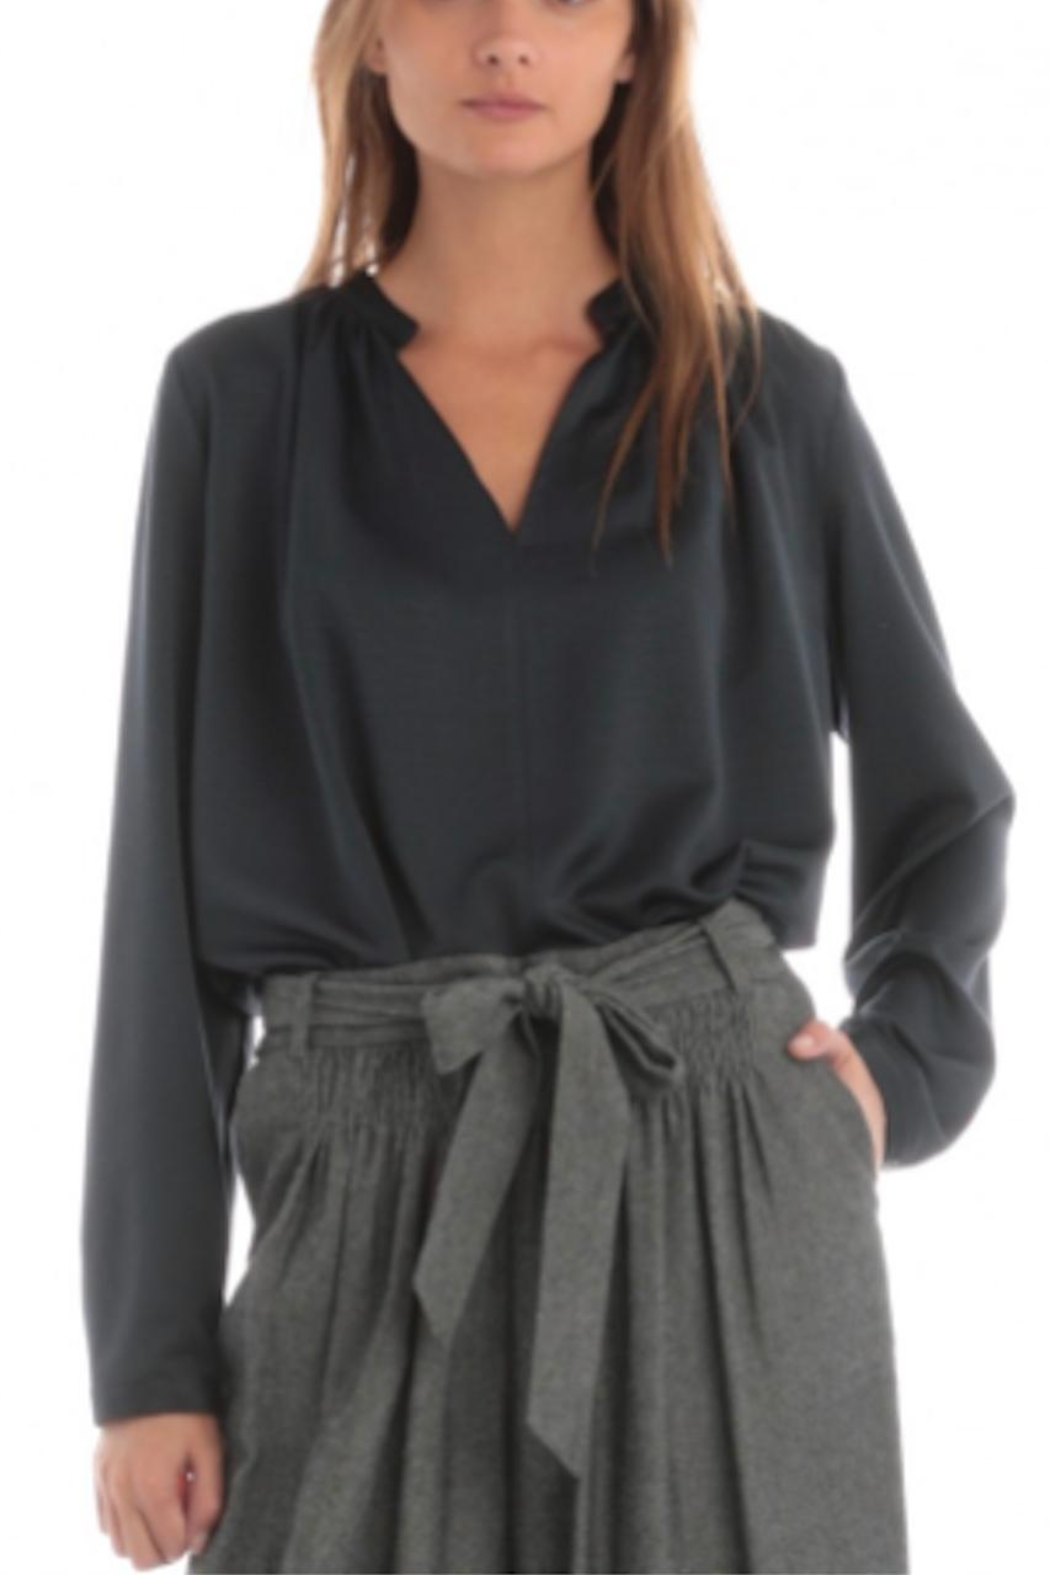 Current Air V-Neck Shirring Blouse - Main Image